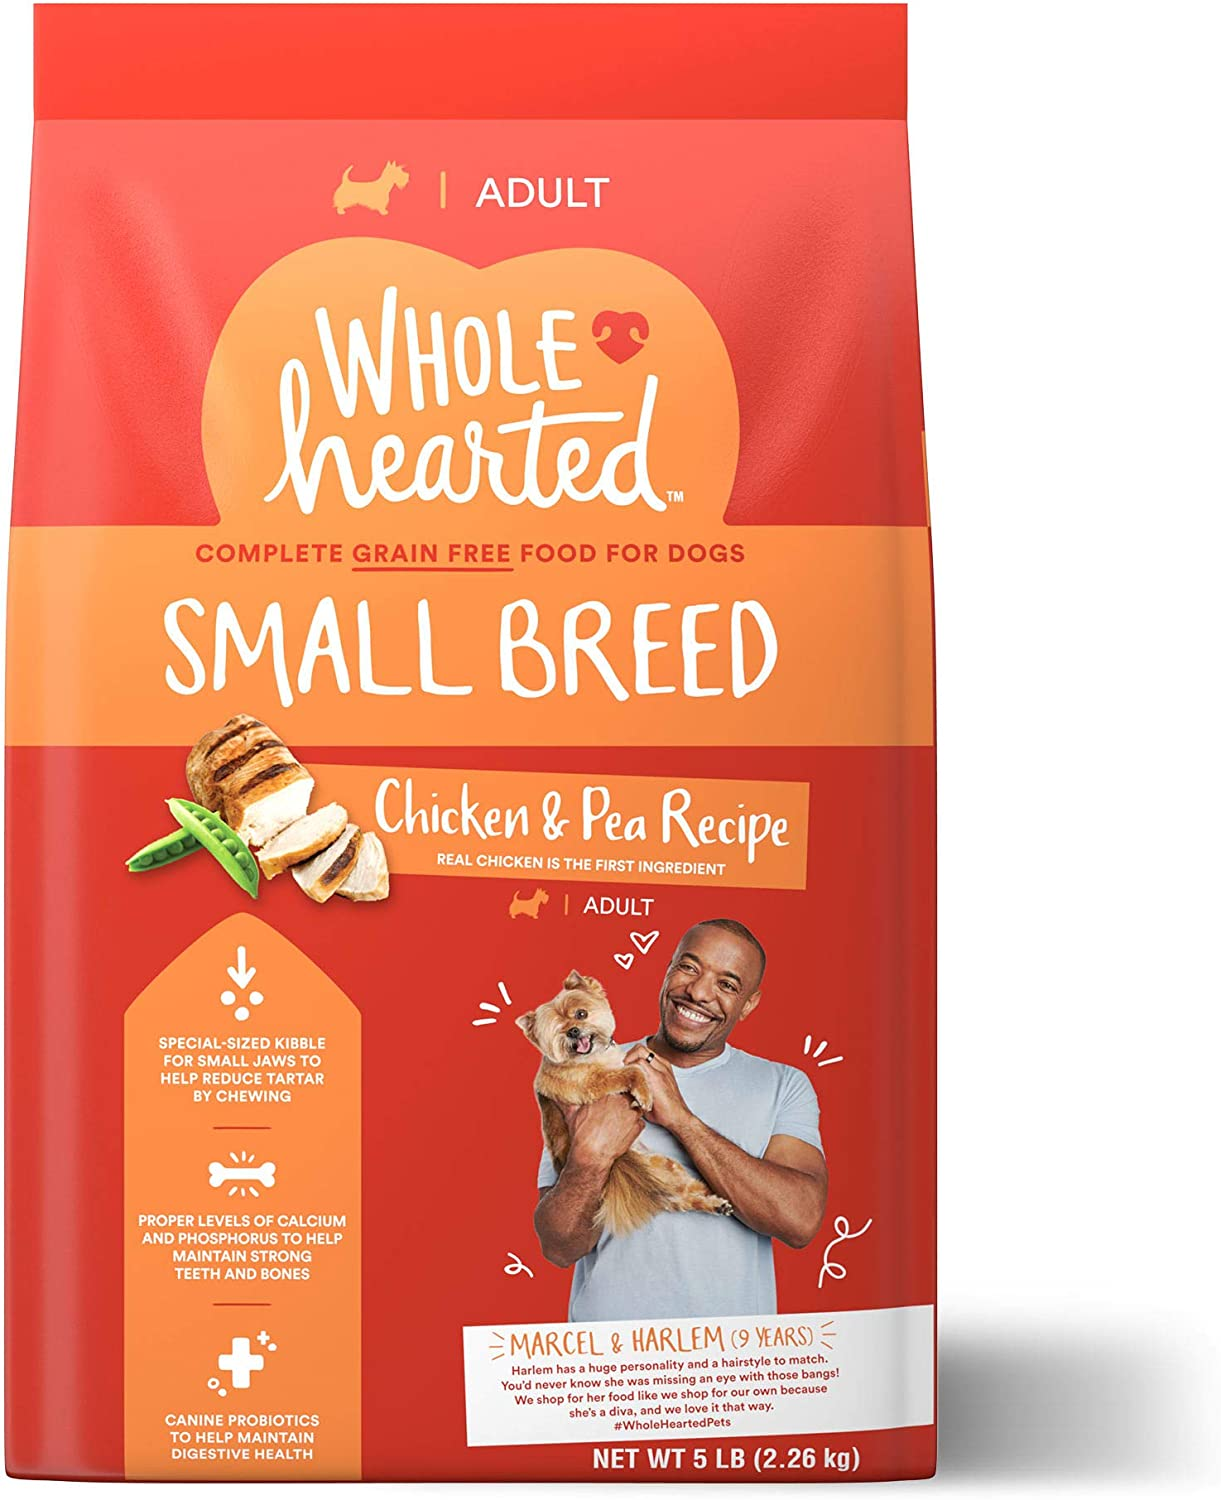 WholeHearted Grain Free Small-Breed Chicken and Pea Recipe Adult Dry Dog Food, 5 lbs.